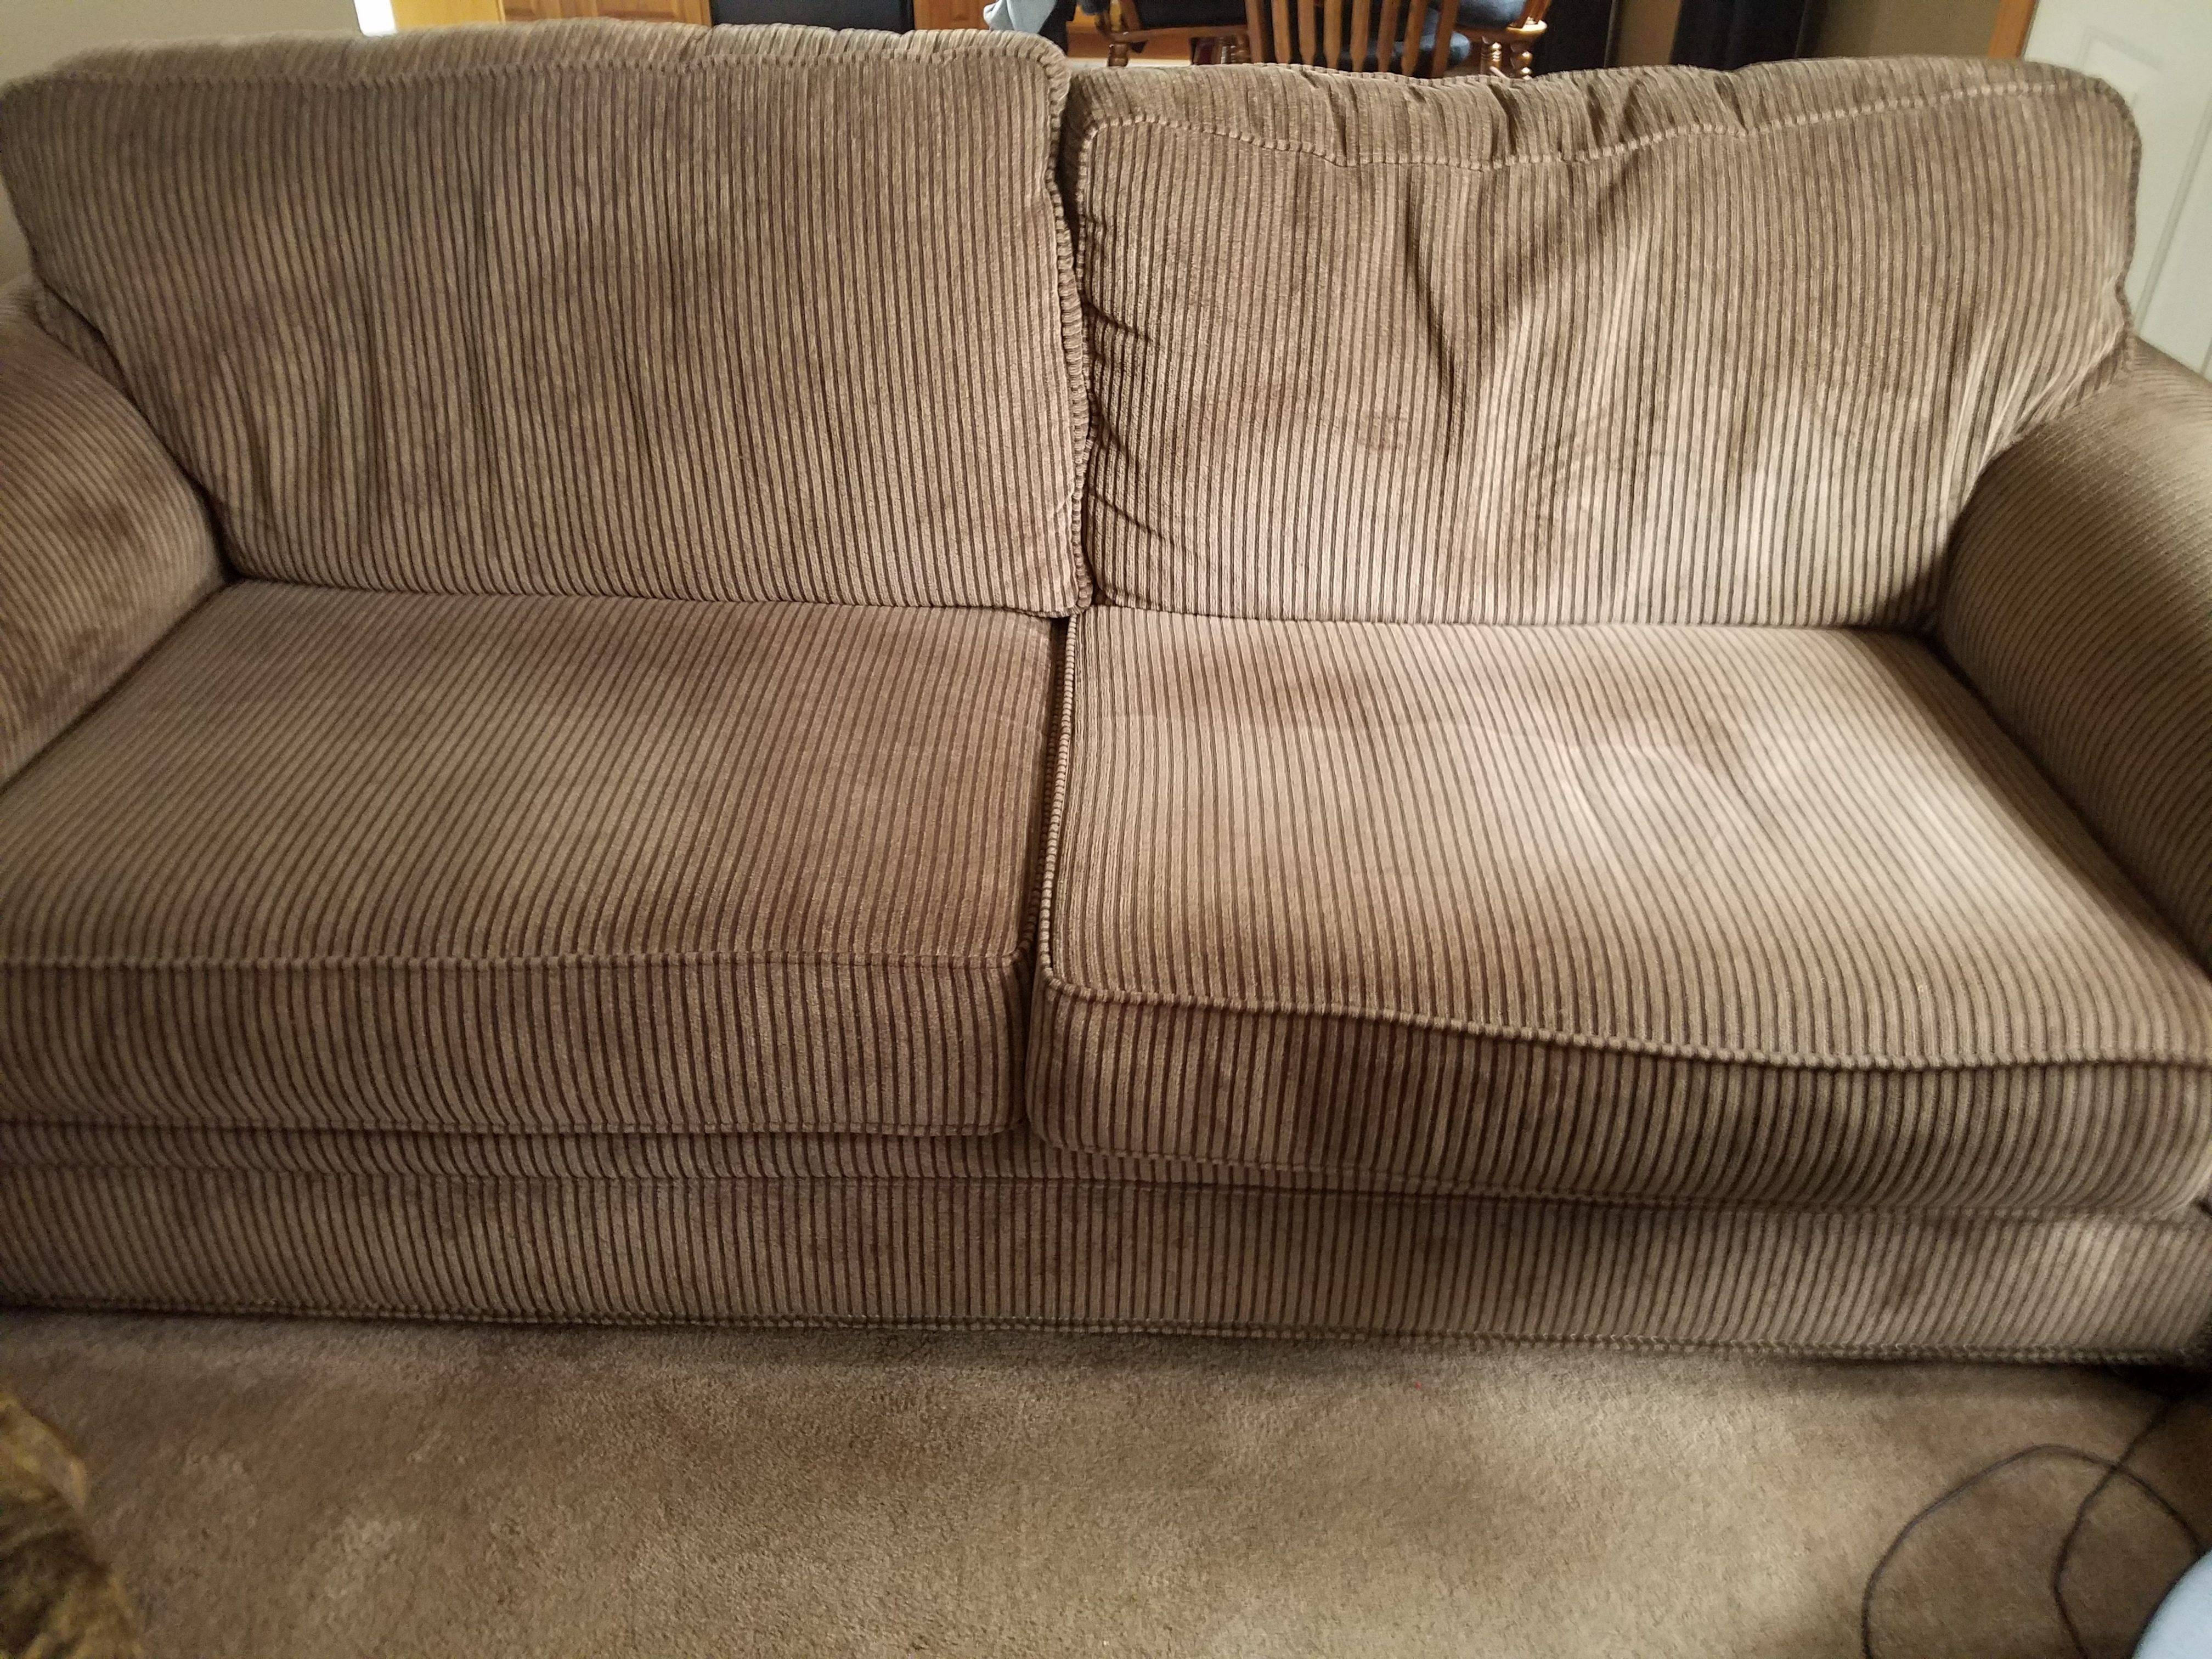 broyhill sectional sofa reviews one piece slipcover 2019 latest top 129 and complaints about within image 28 of 30